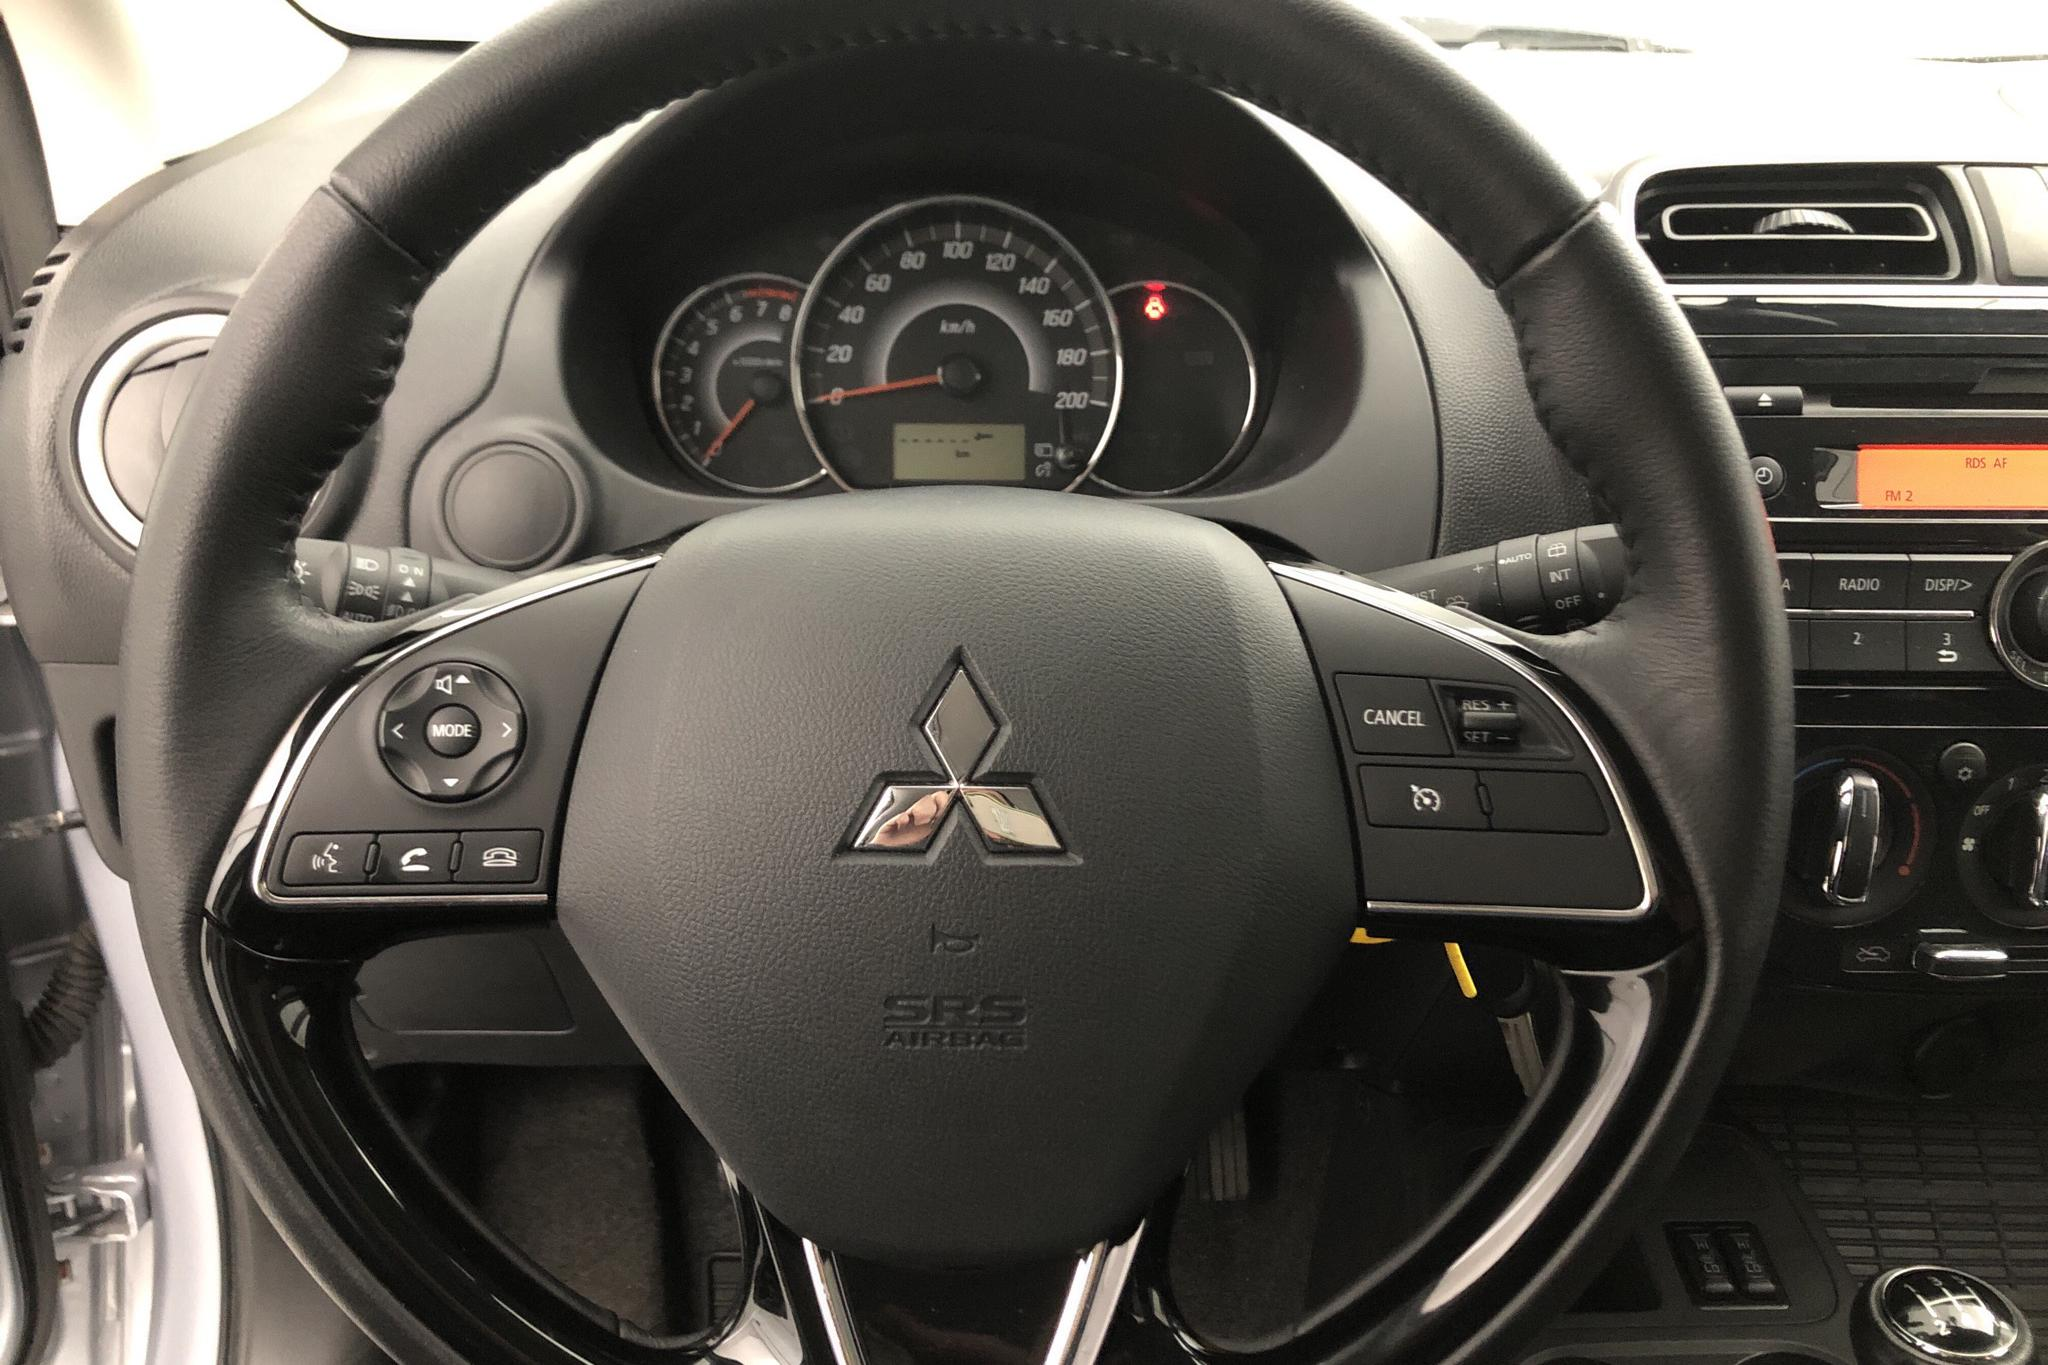 Mitsubishi Space Star 1.2 5dr (80hk) - 472 mil - Manuell - silver - 2016